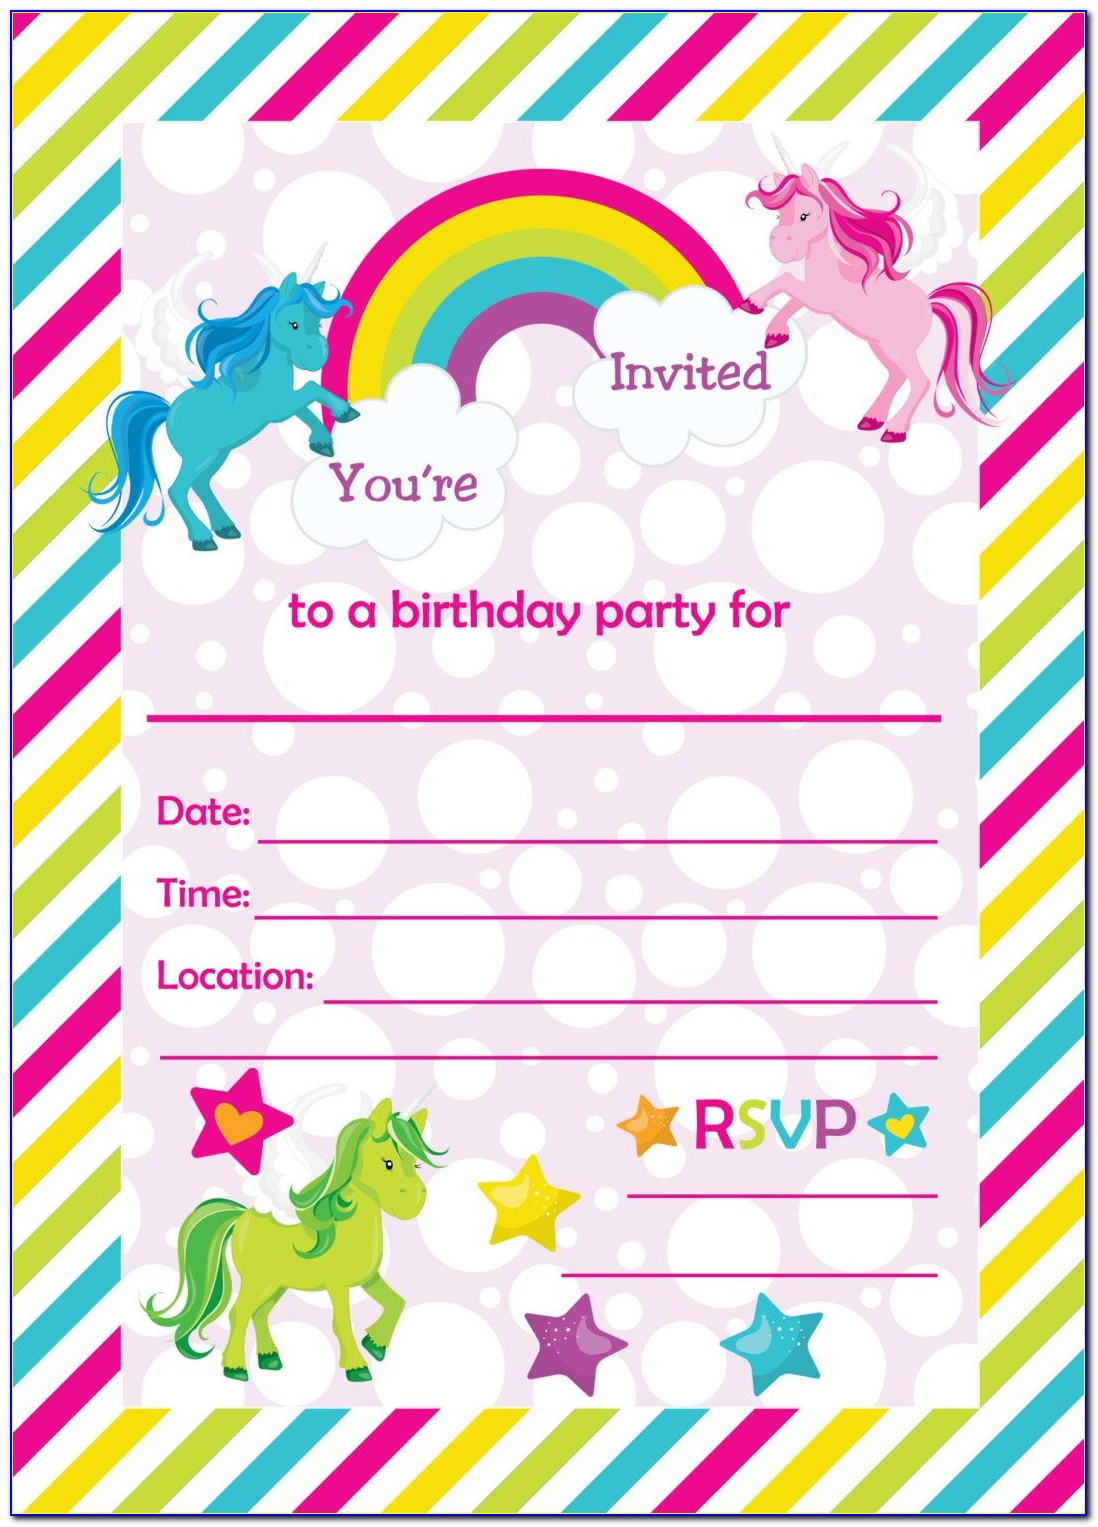 Free Printable Pool Party Invitations Templates